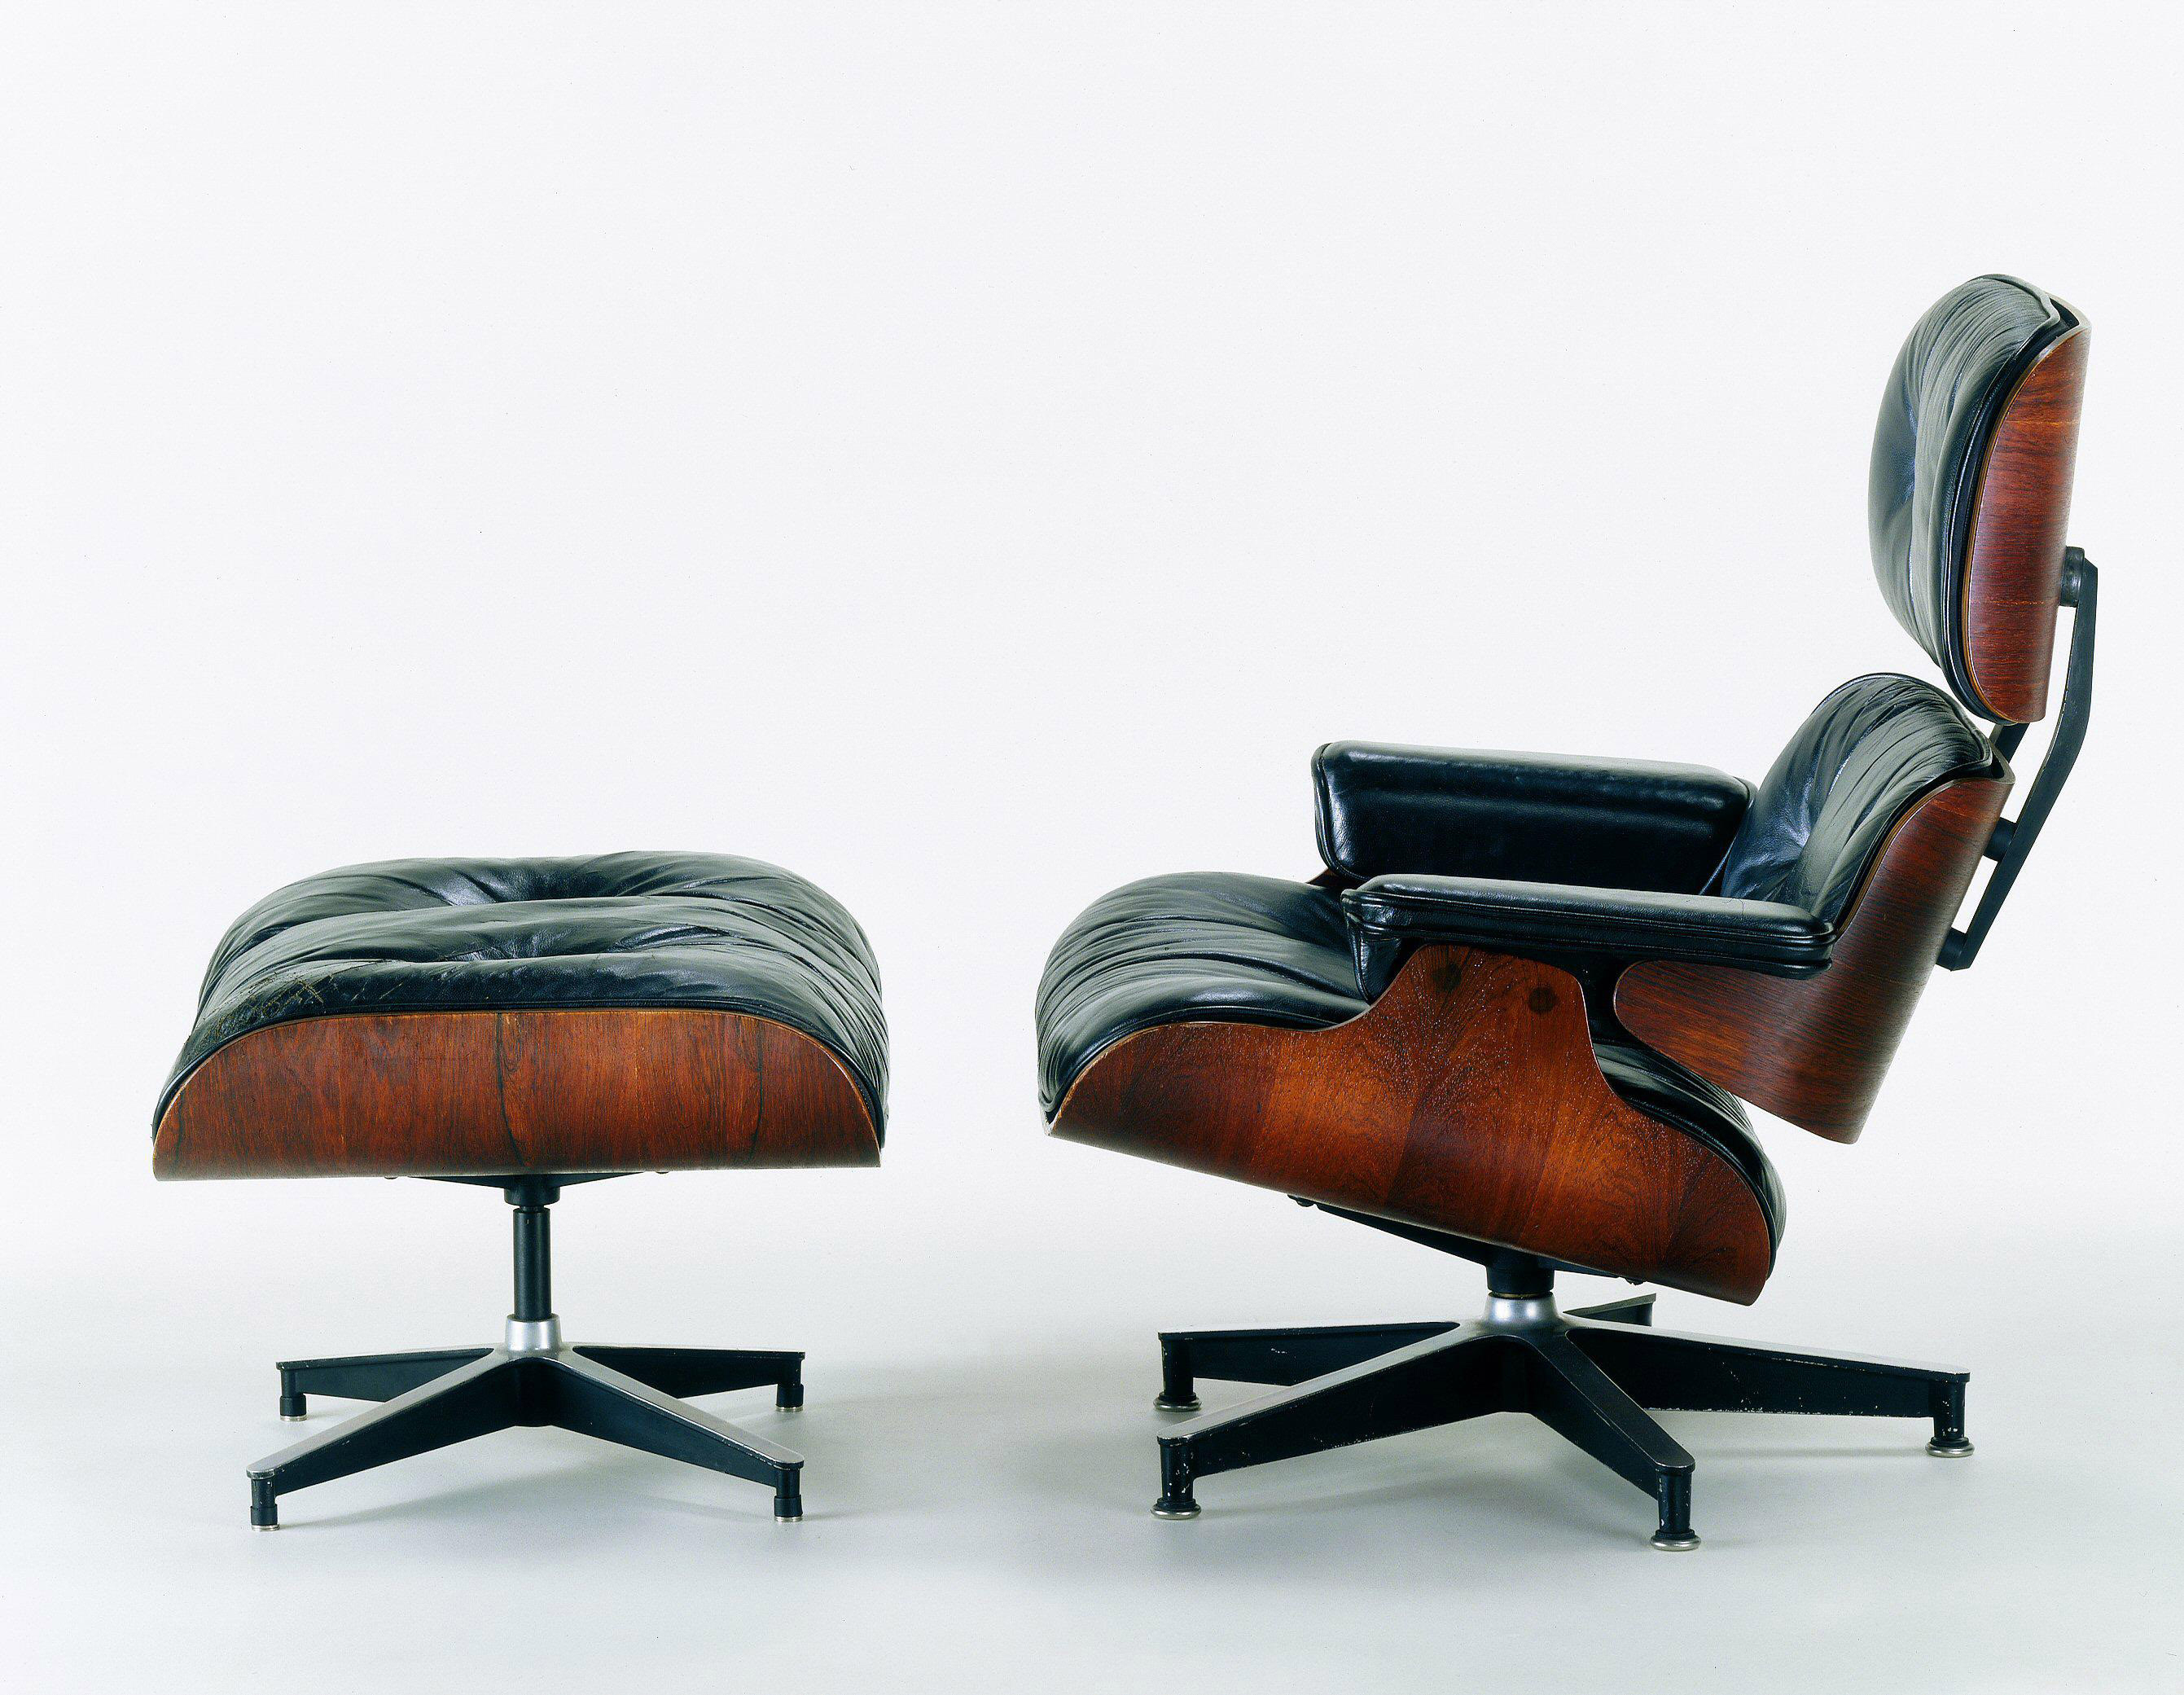 eames lounge chair manufacturing in the vitra atelier. Black Bedroom Furniture Sets. Home Design Ideas